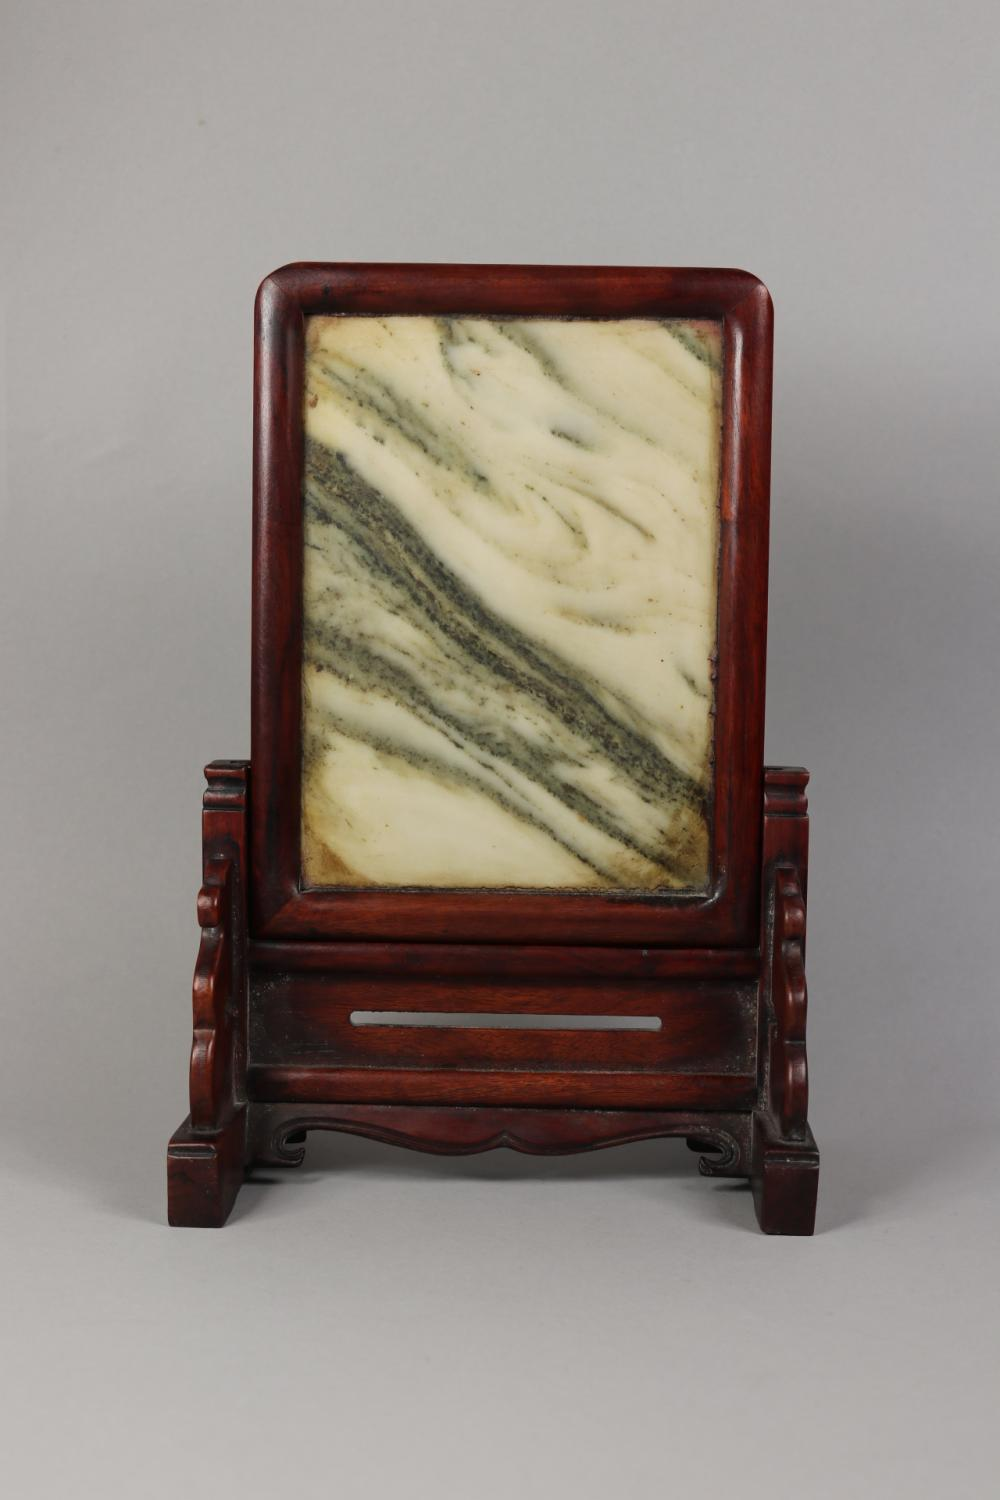 Chinese rosewood stone inset  frame, approx 29cm H x 19cm W